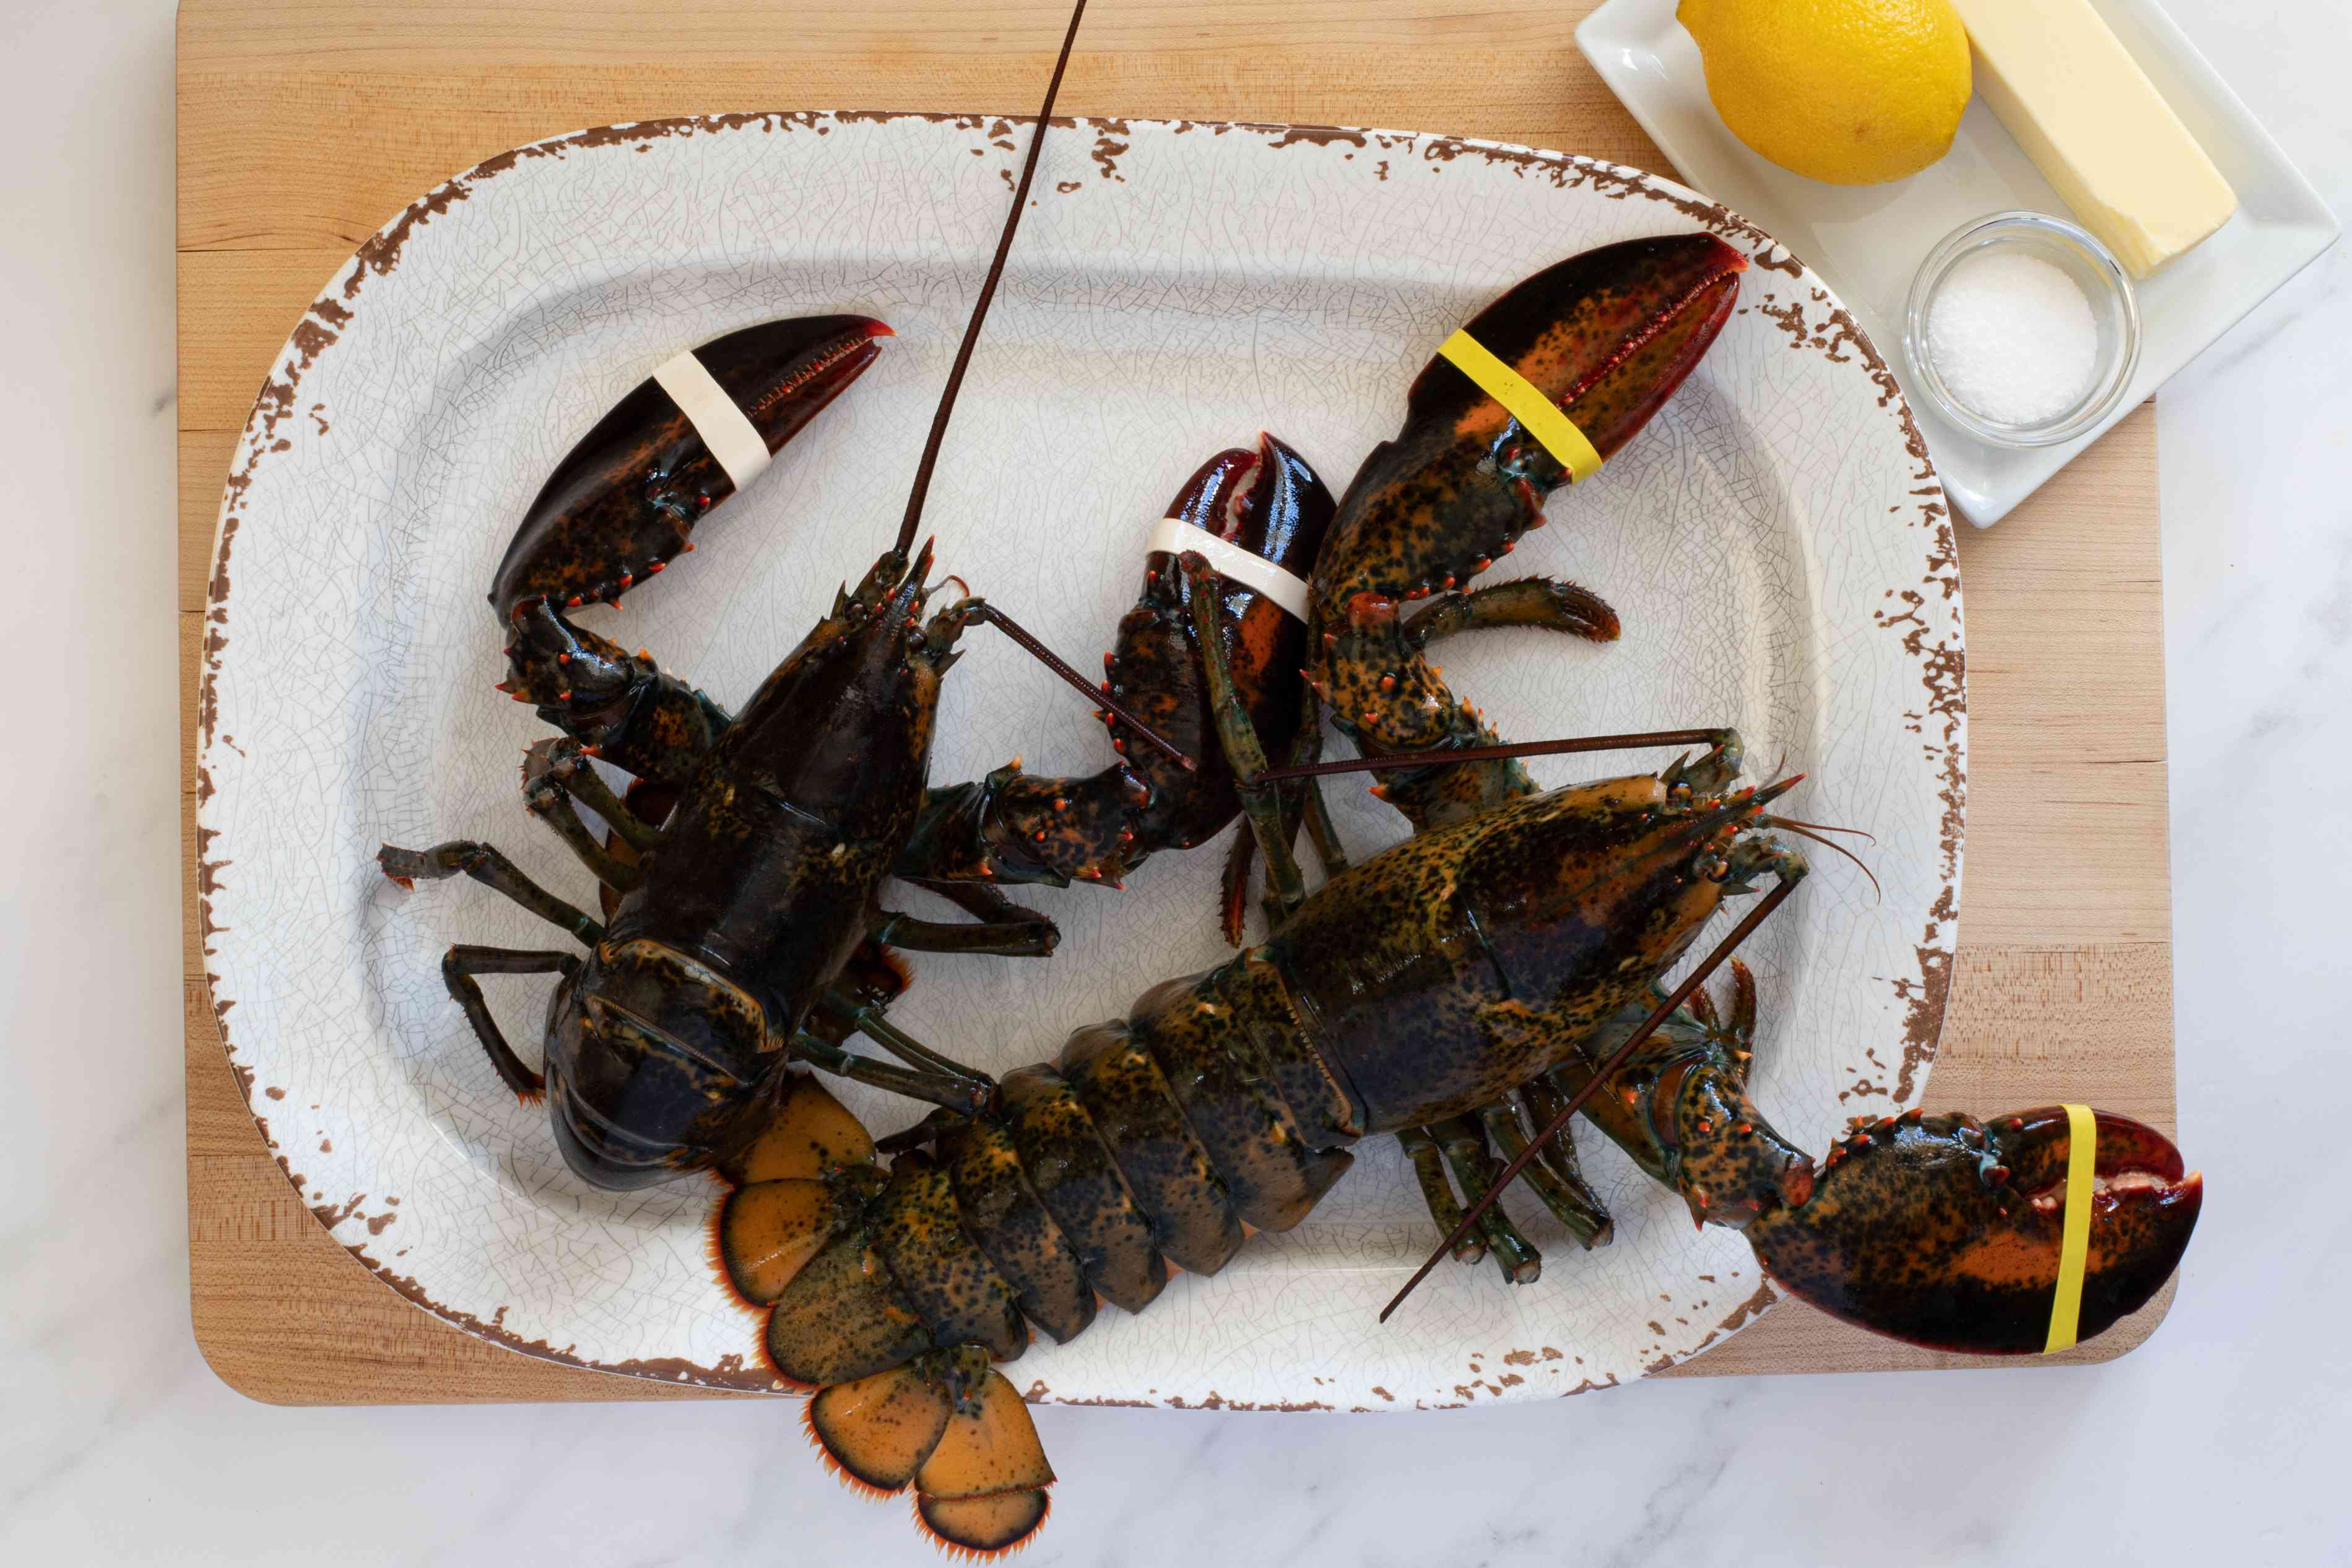 two live lobsters and ingredients for steamed lobsters